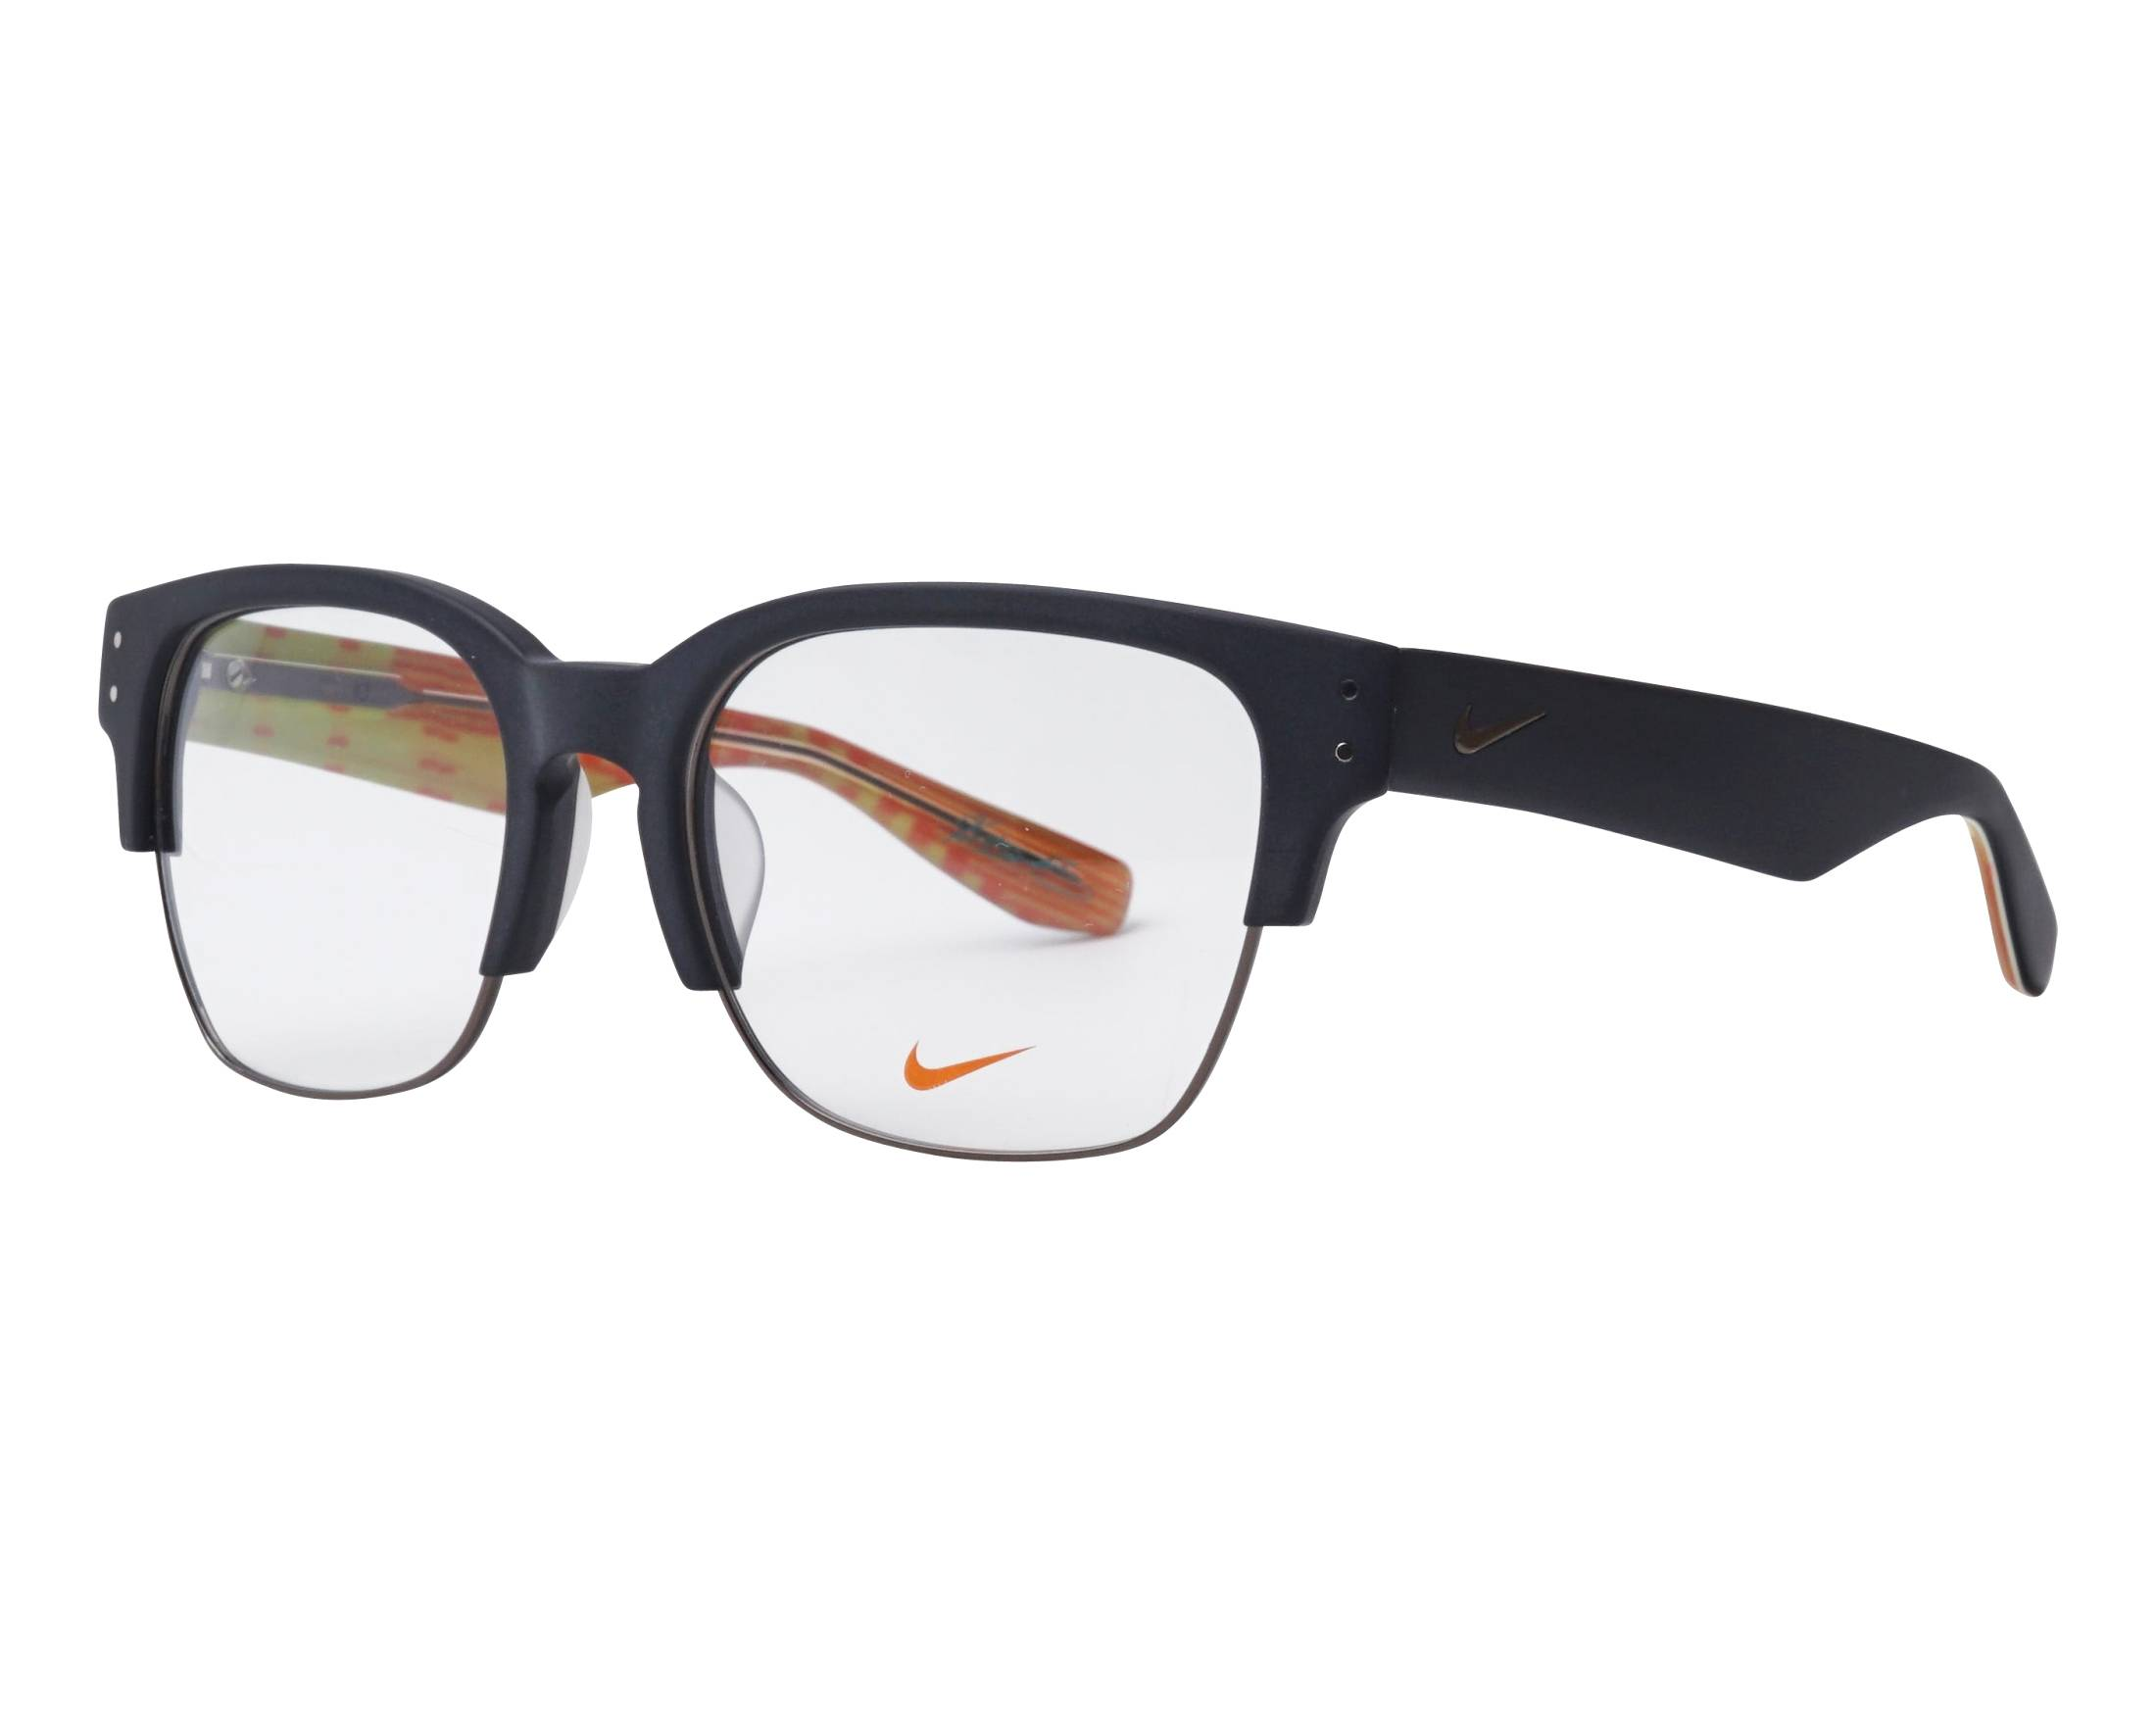 710699bd29 eyeglasses Nike 35-KD 001 55-19 Black Gun profile view